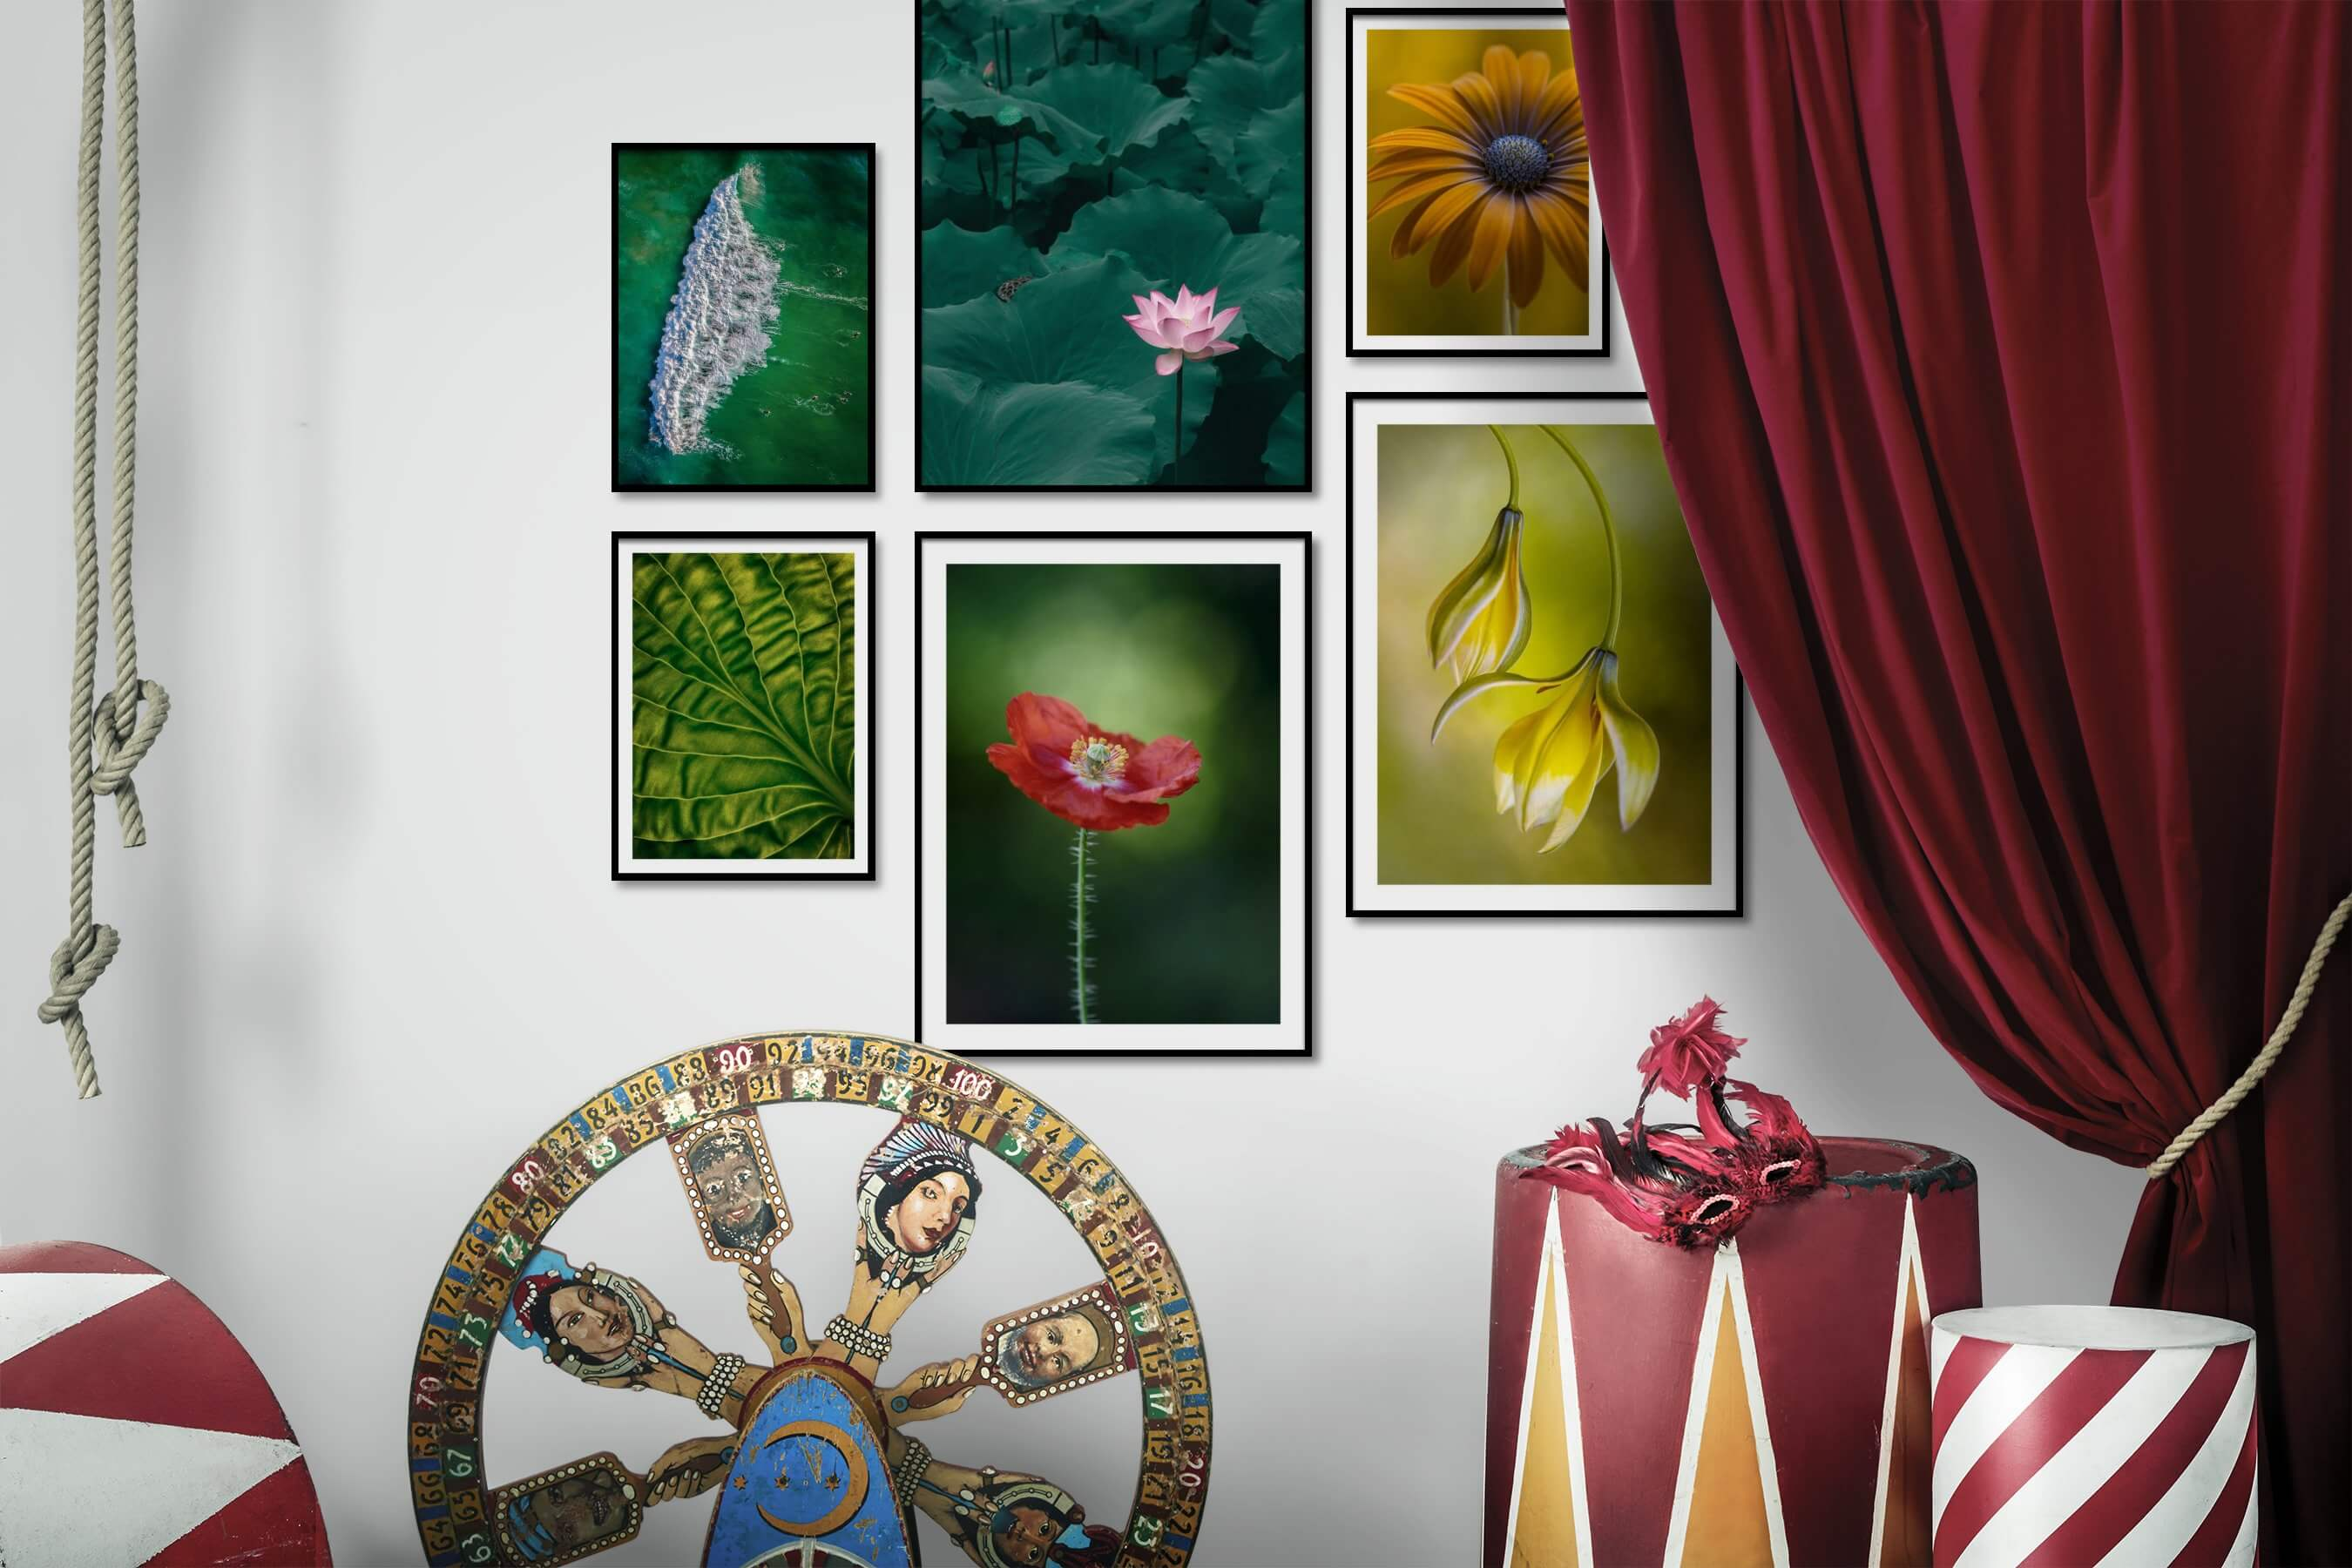 Gallery wall idea with six framed pictures arranged on a wall depicting For the Minimalist, Beach & Water, For the Moderate, and Flowers & Plants